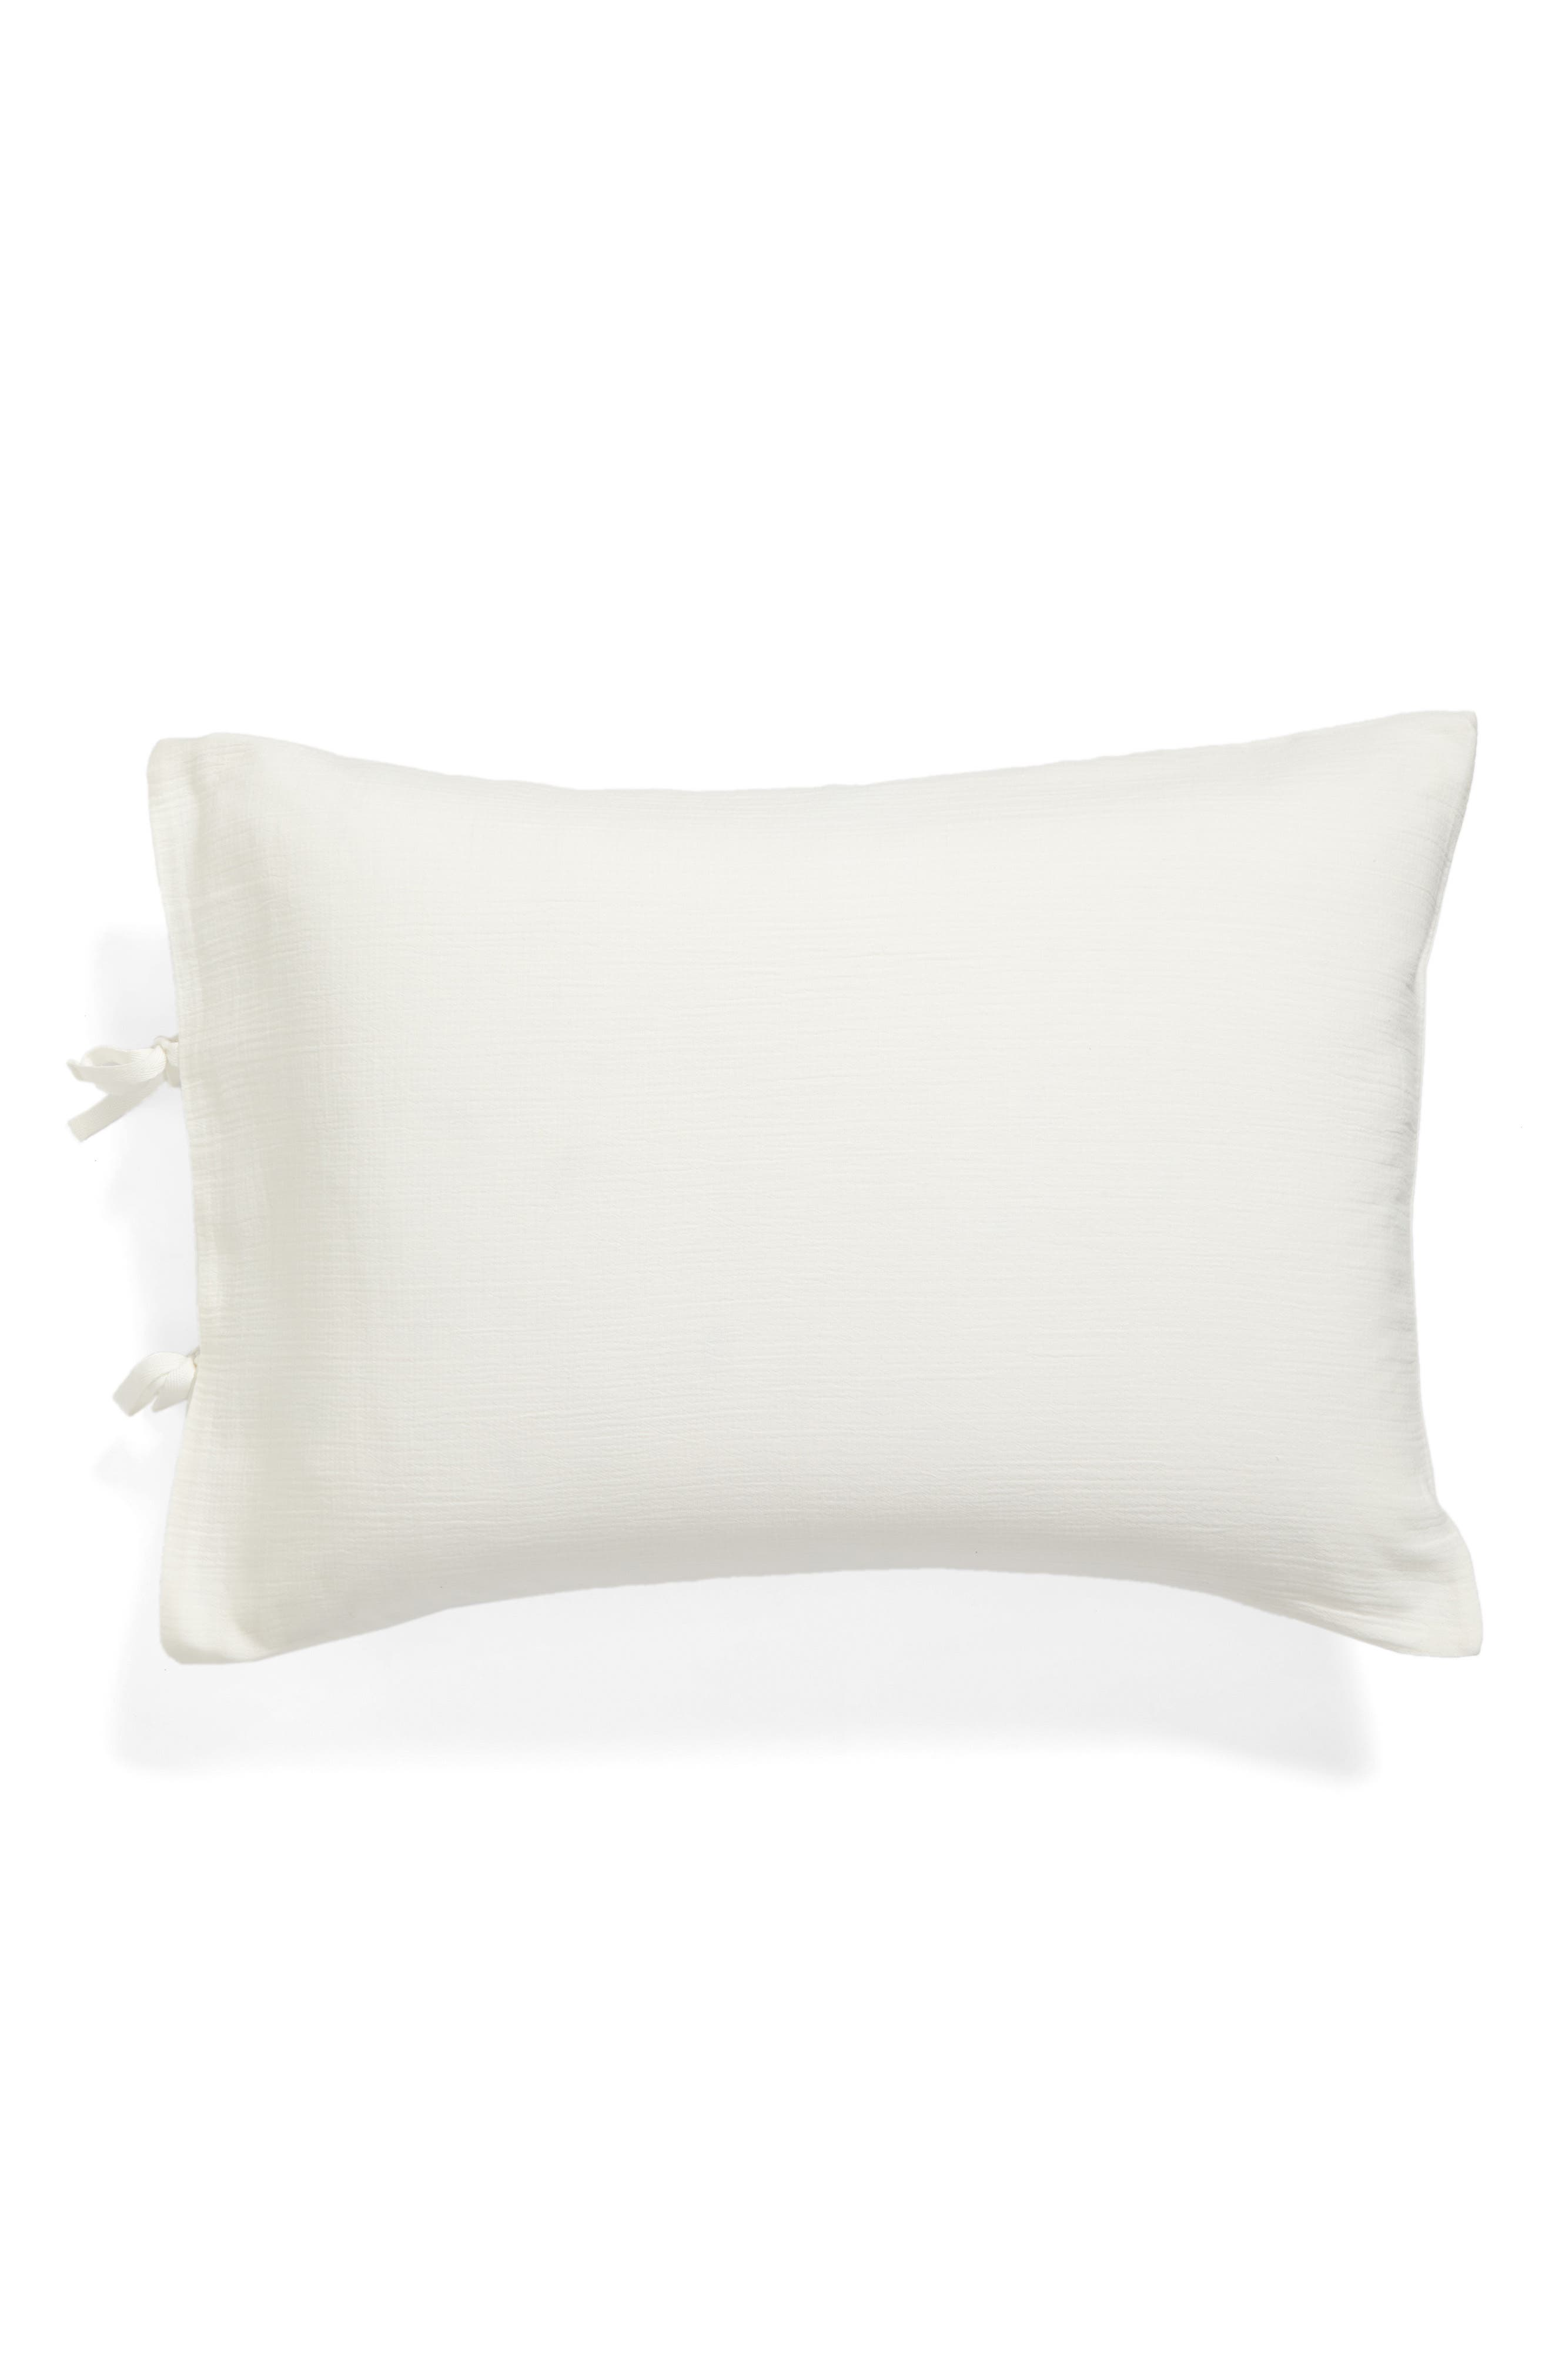 Nordstrom at Home Double Weave Sham